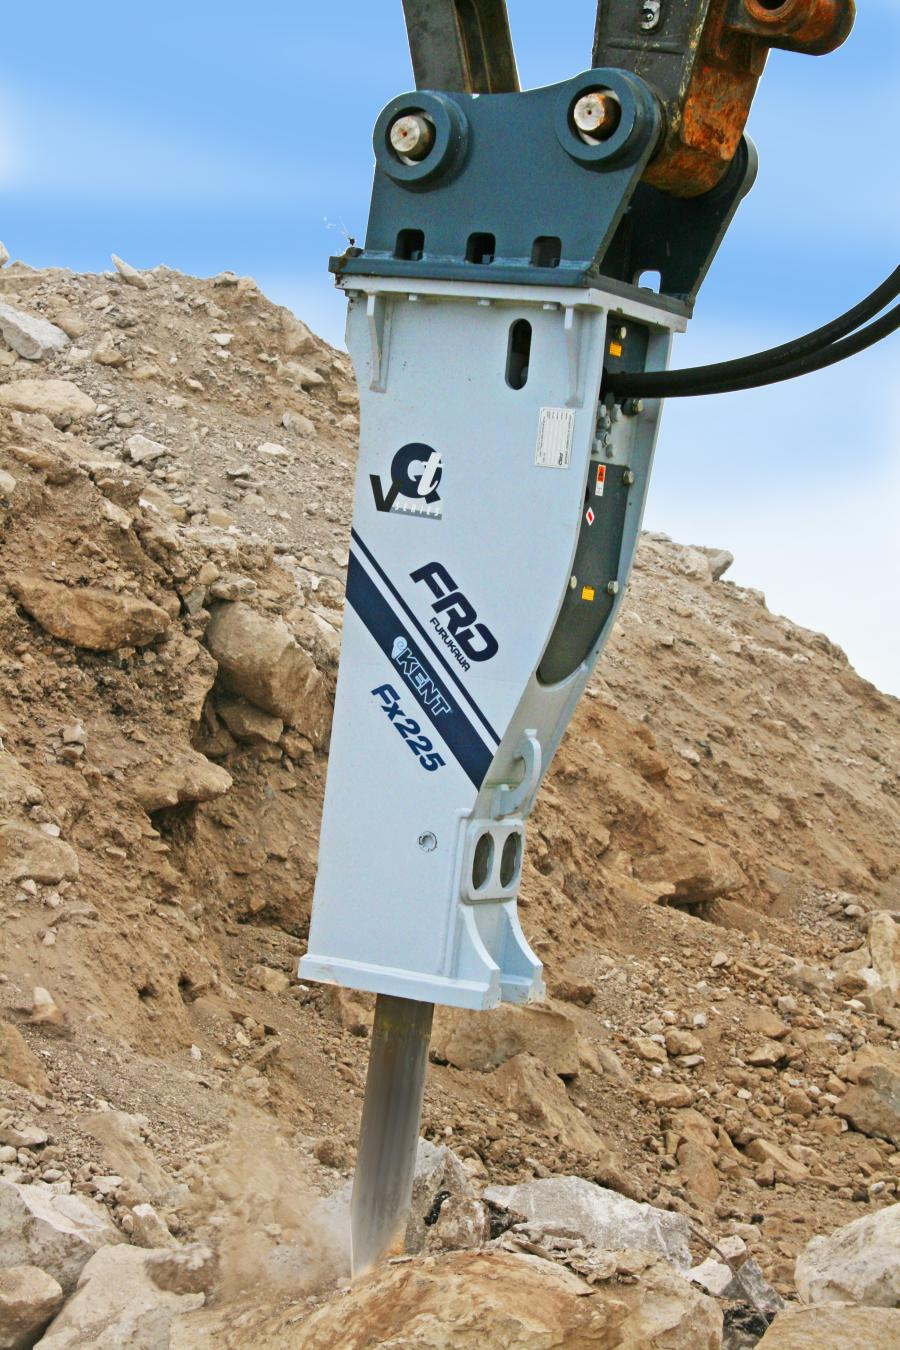 The Fx225 is the latest in FRD USA's line of hard-hitting, large-series breakers. The hammer is designed to help improve day-to-day performance, providing less maintenance and downtime, smoother operation, added strength and a high level of reliability.